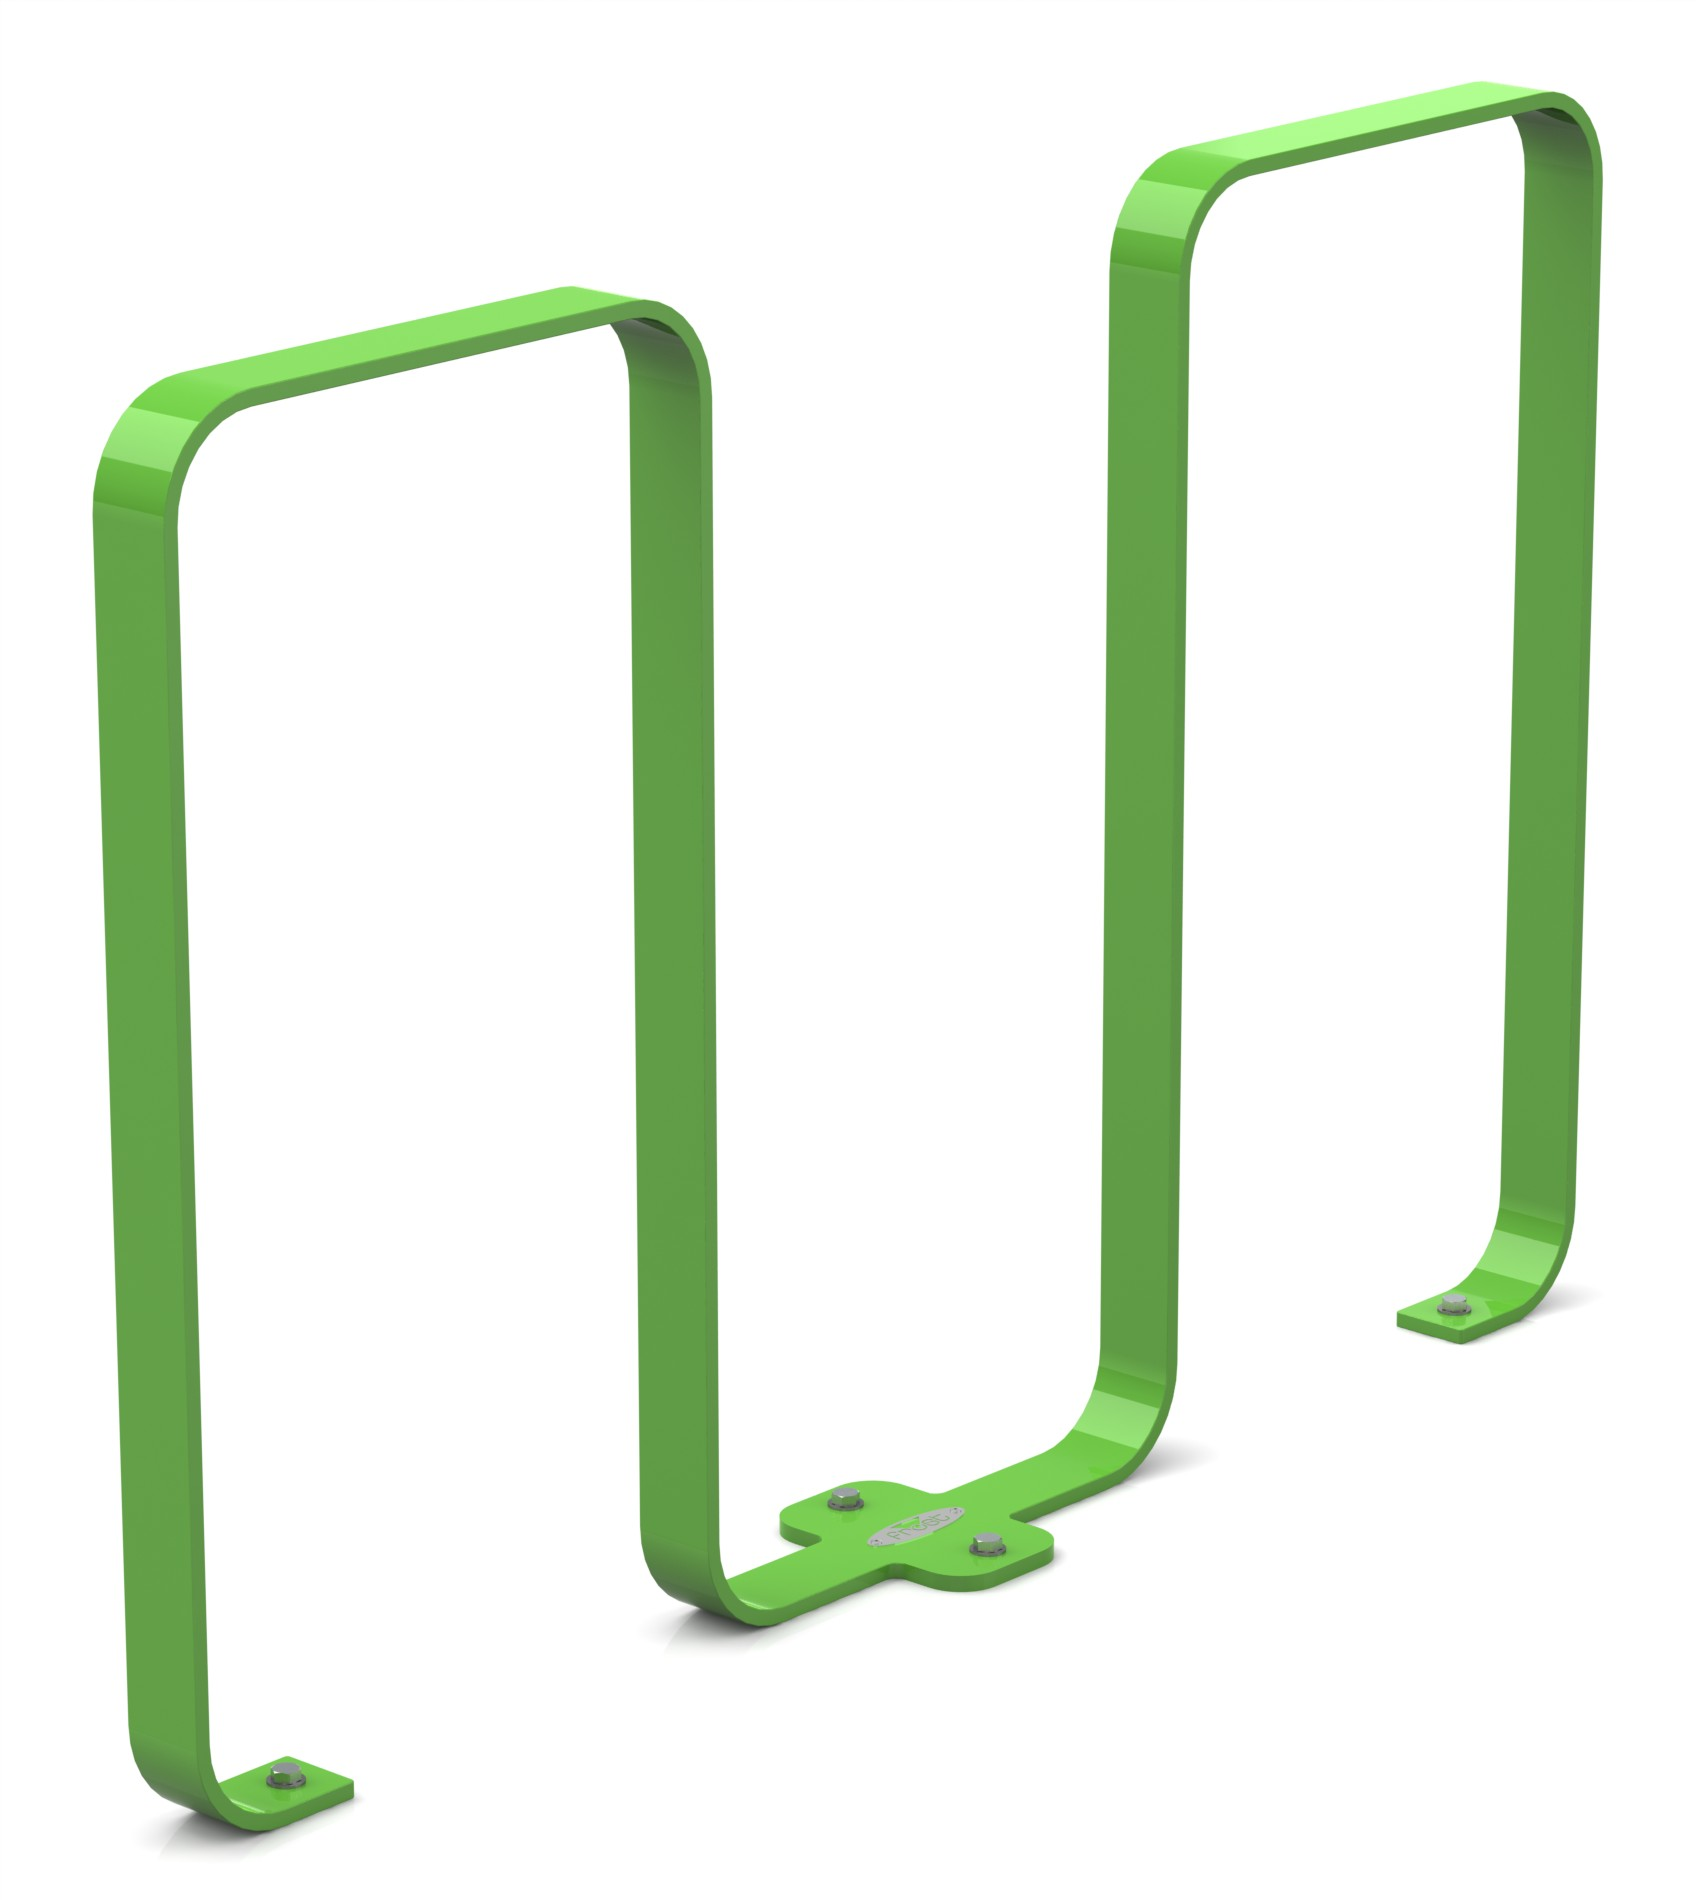 Frost 2080 - Linguini bike rack green.JPG